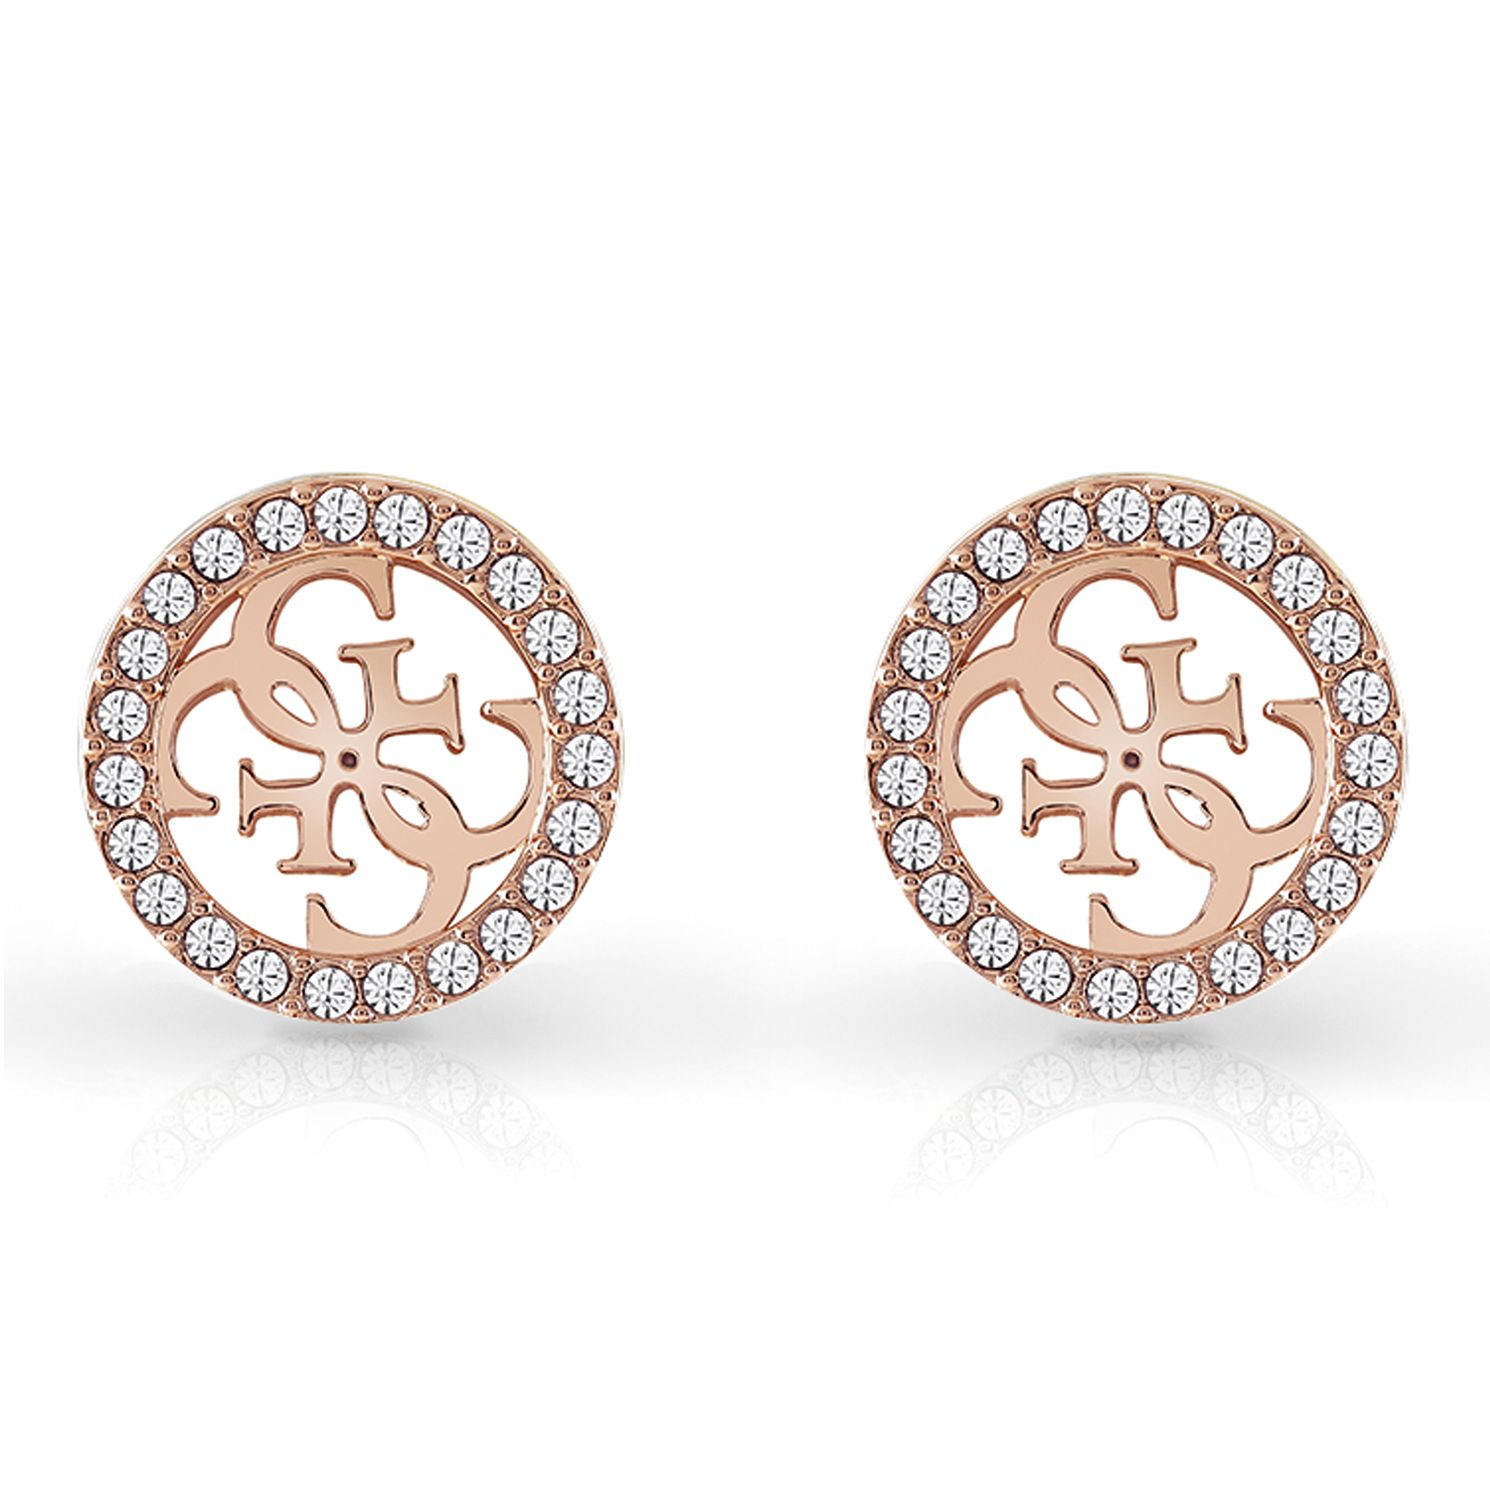 Guess Rose Gold Tone Swarovski Crystal 4-G Stud Earrings - Product number 4103211